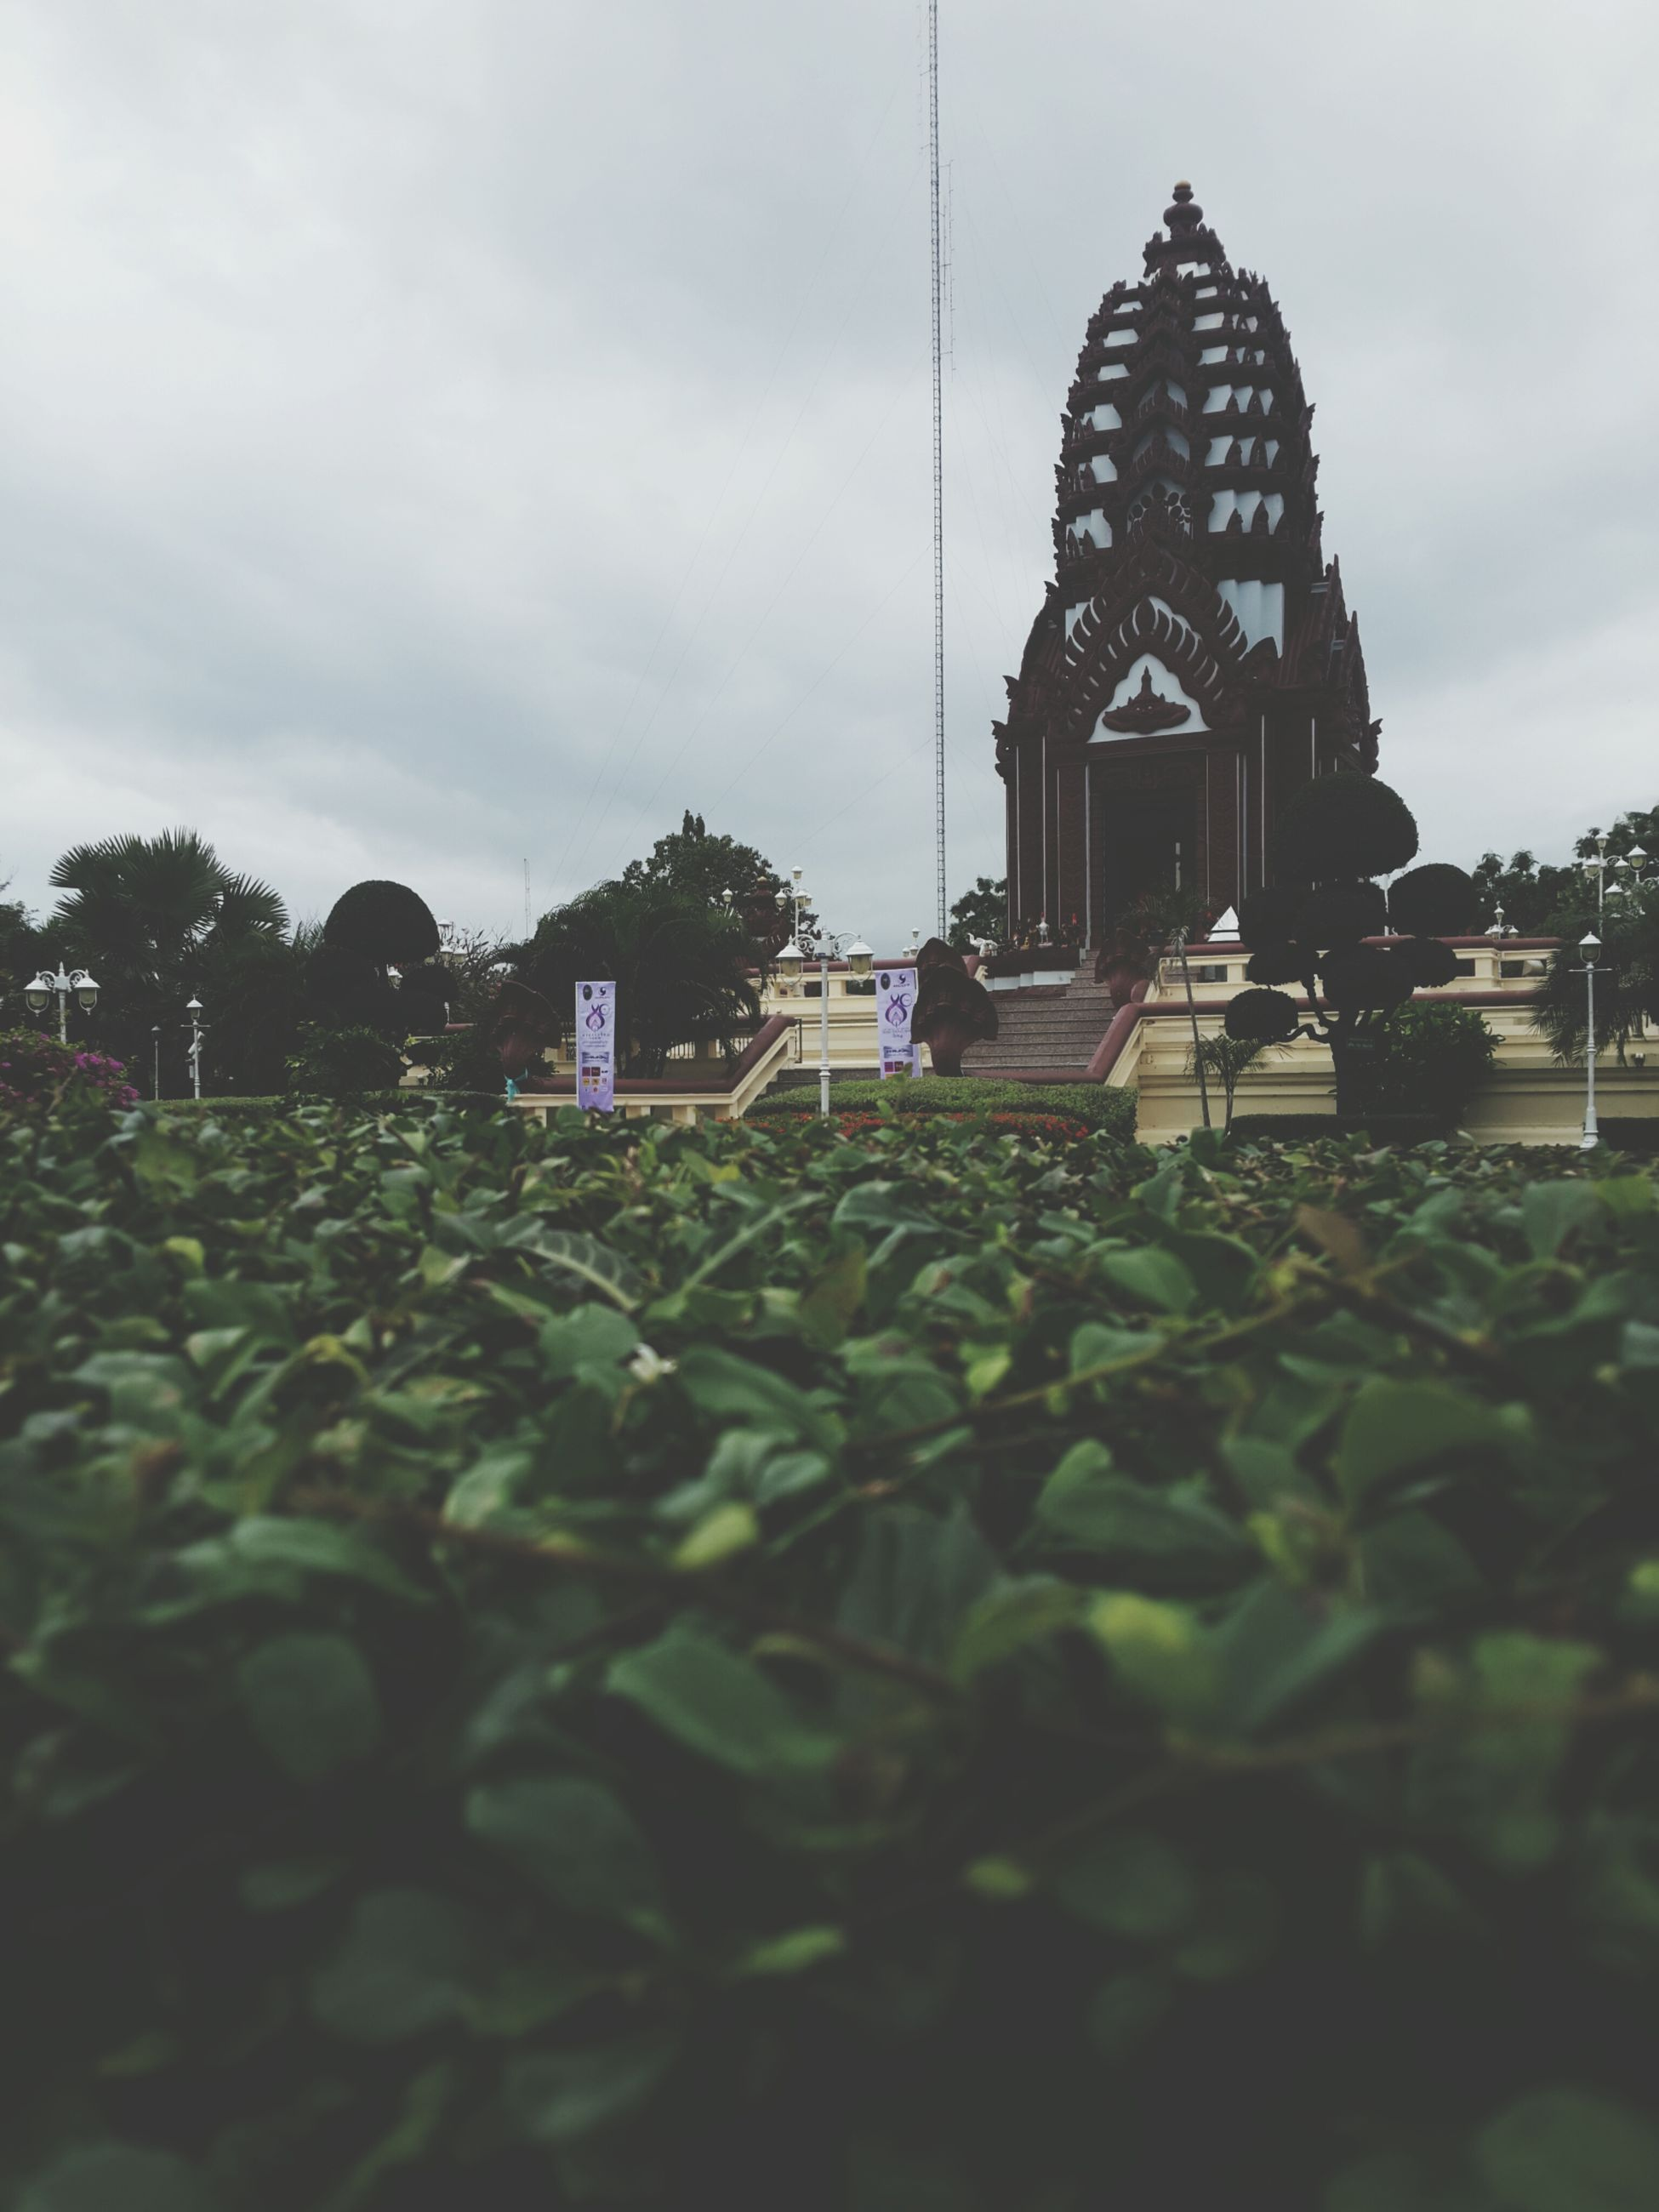 religion, building exterior, sky, spirituality, built structure, place of worship, architecture, plant, church, growth, cloud - sky, temple - building, tree, green color, outdoors, day, cloud